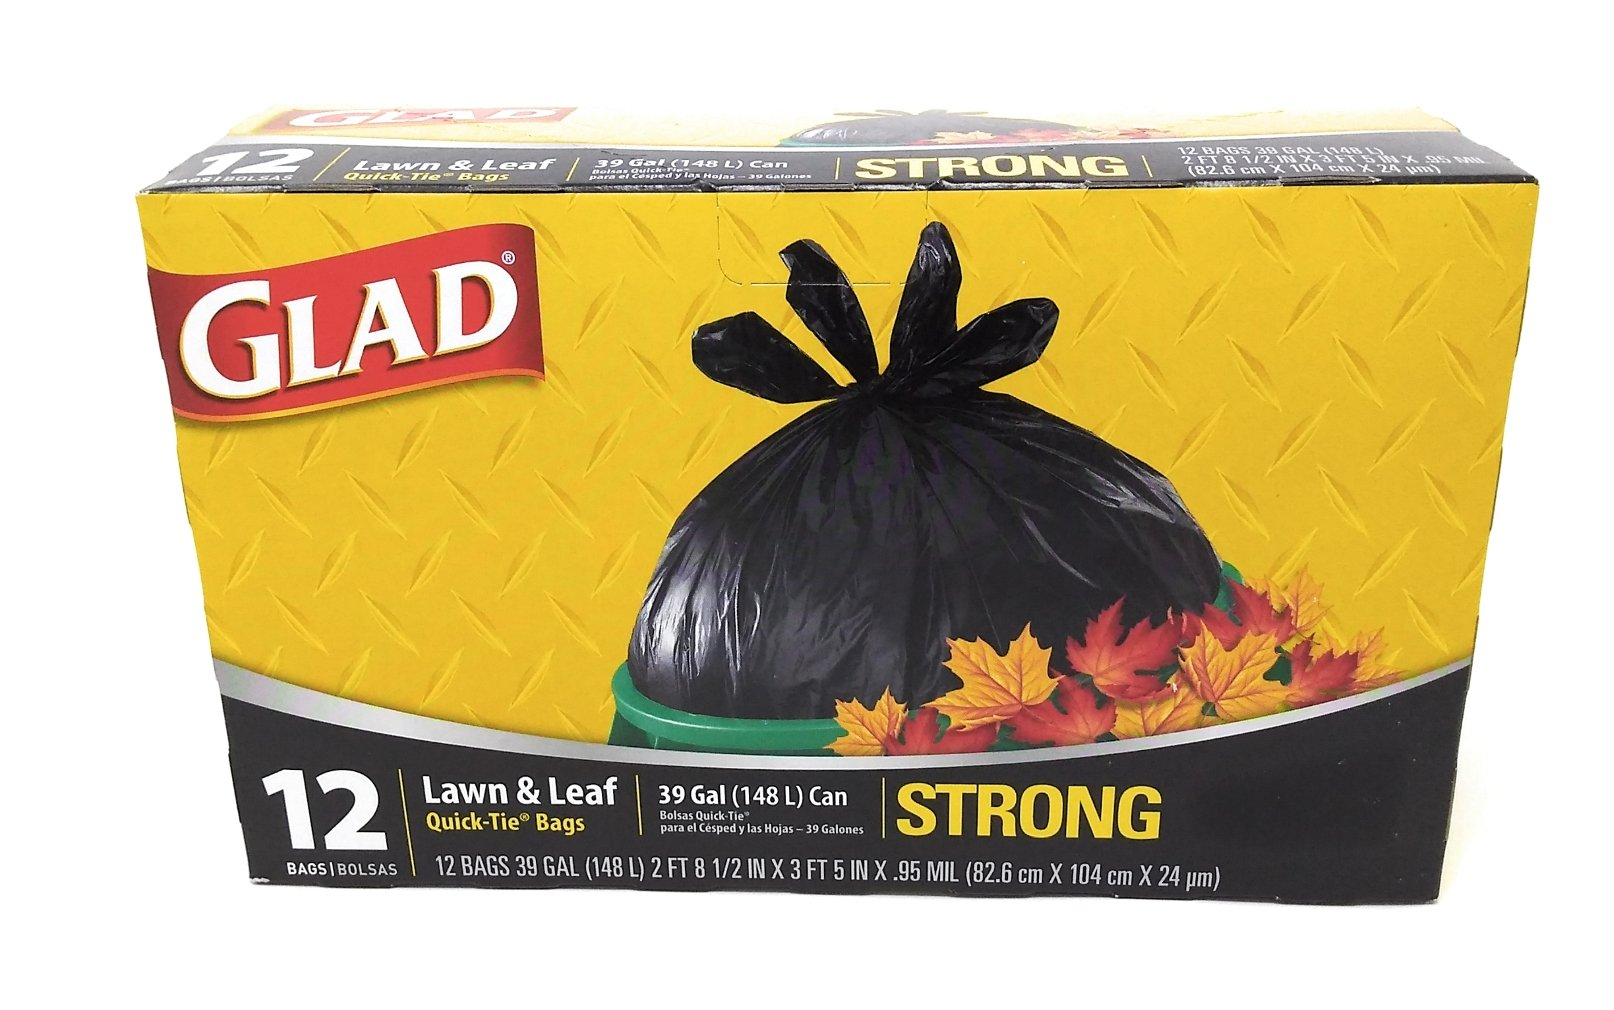 Glad 39 Gallon Quick Tie Lawn & Leaf Bags - 12 Packs